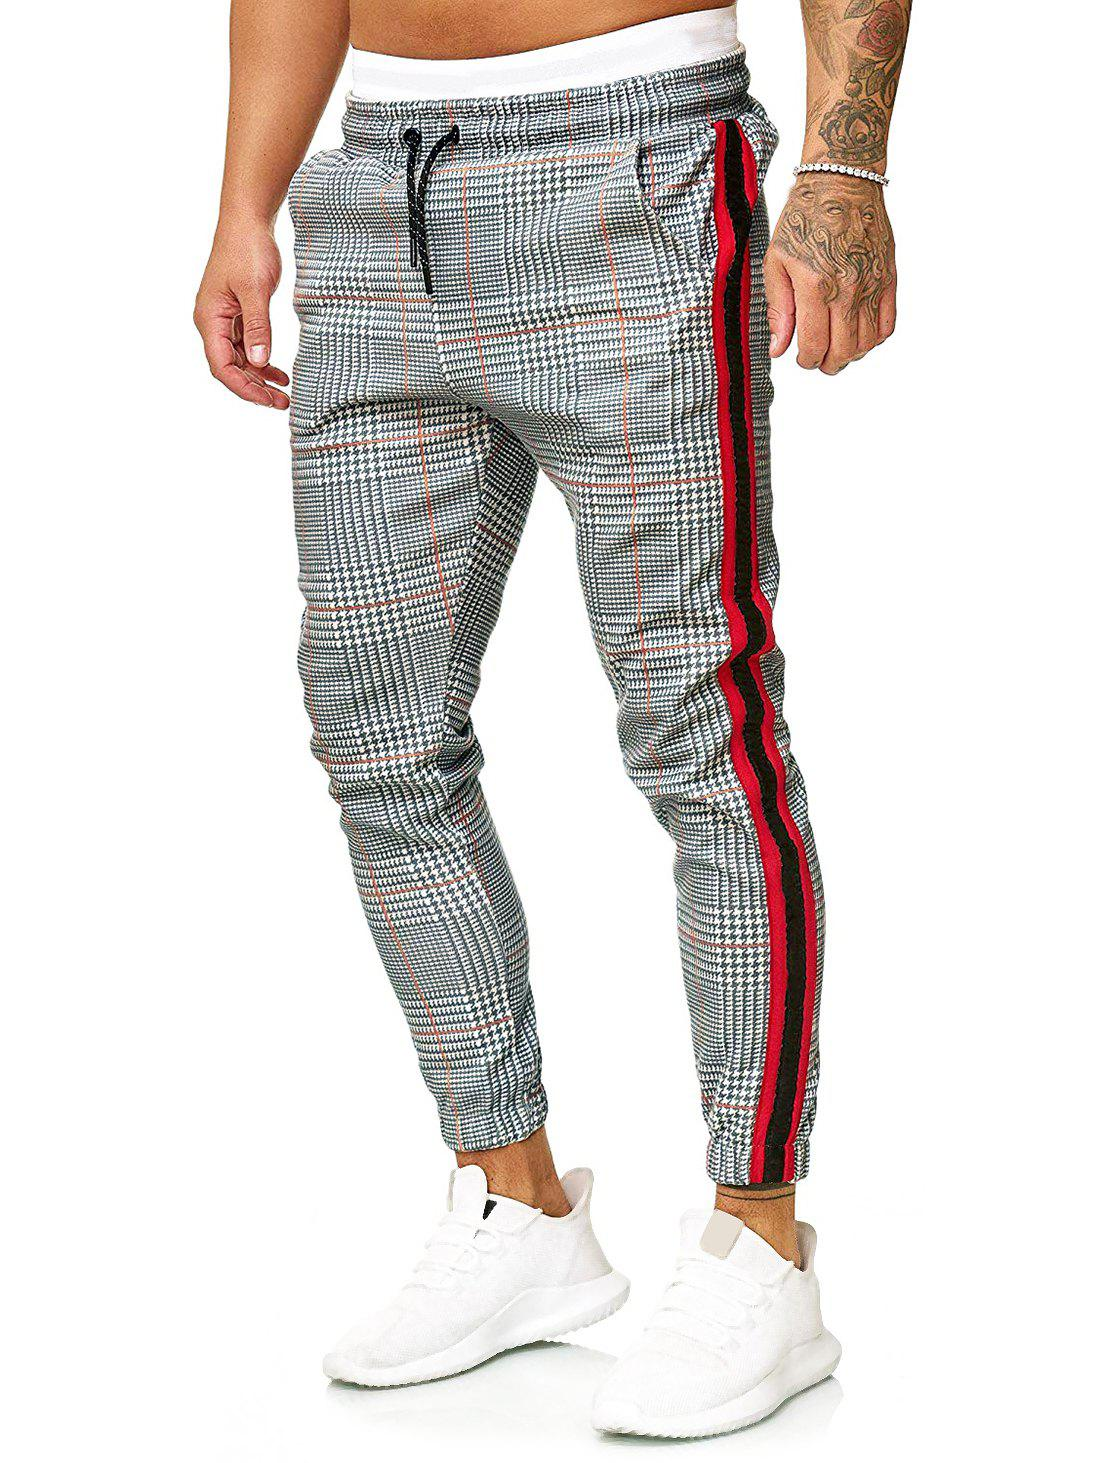 Contrast Striped Spliced Pattern Graphic Print Casual Jogger Pants фото